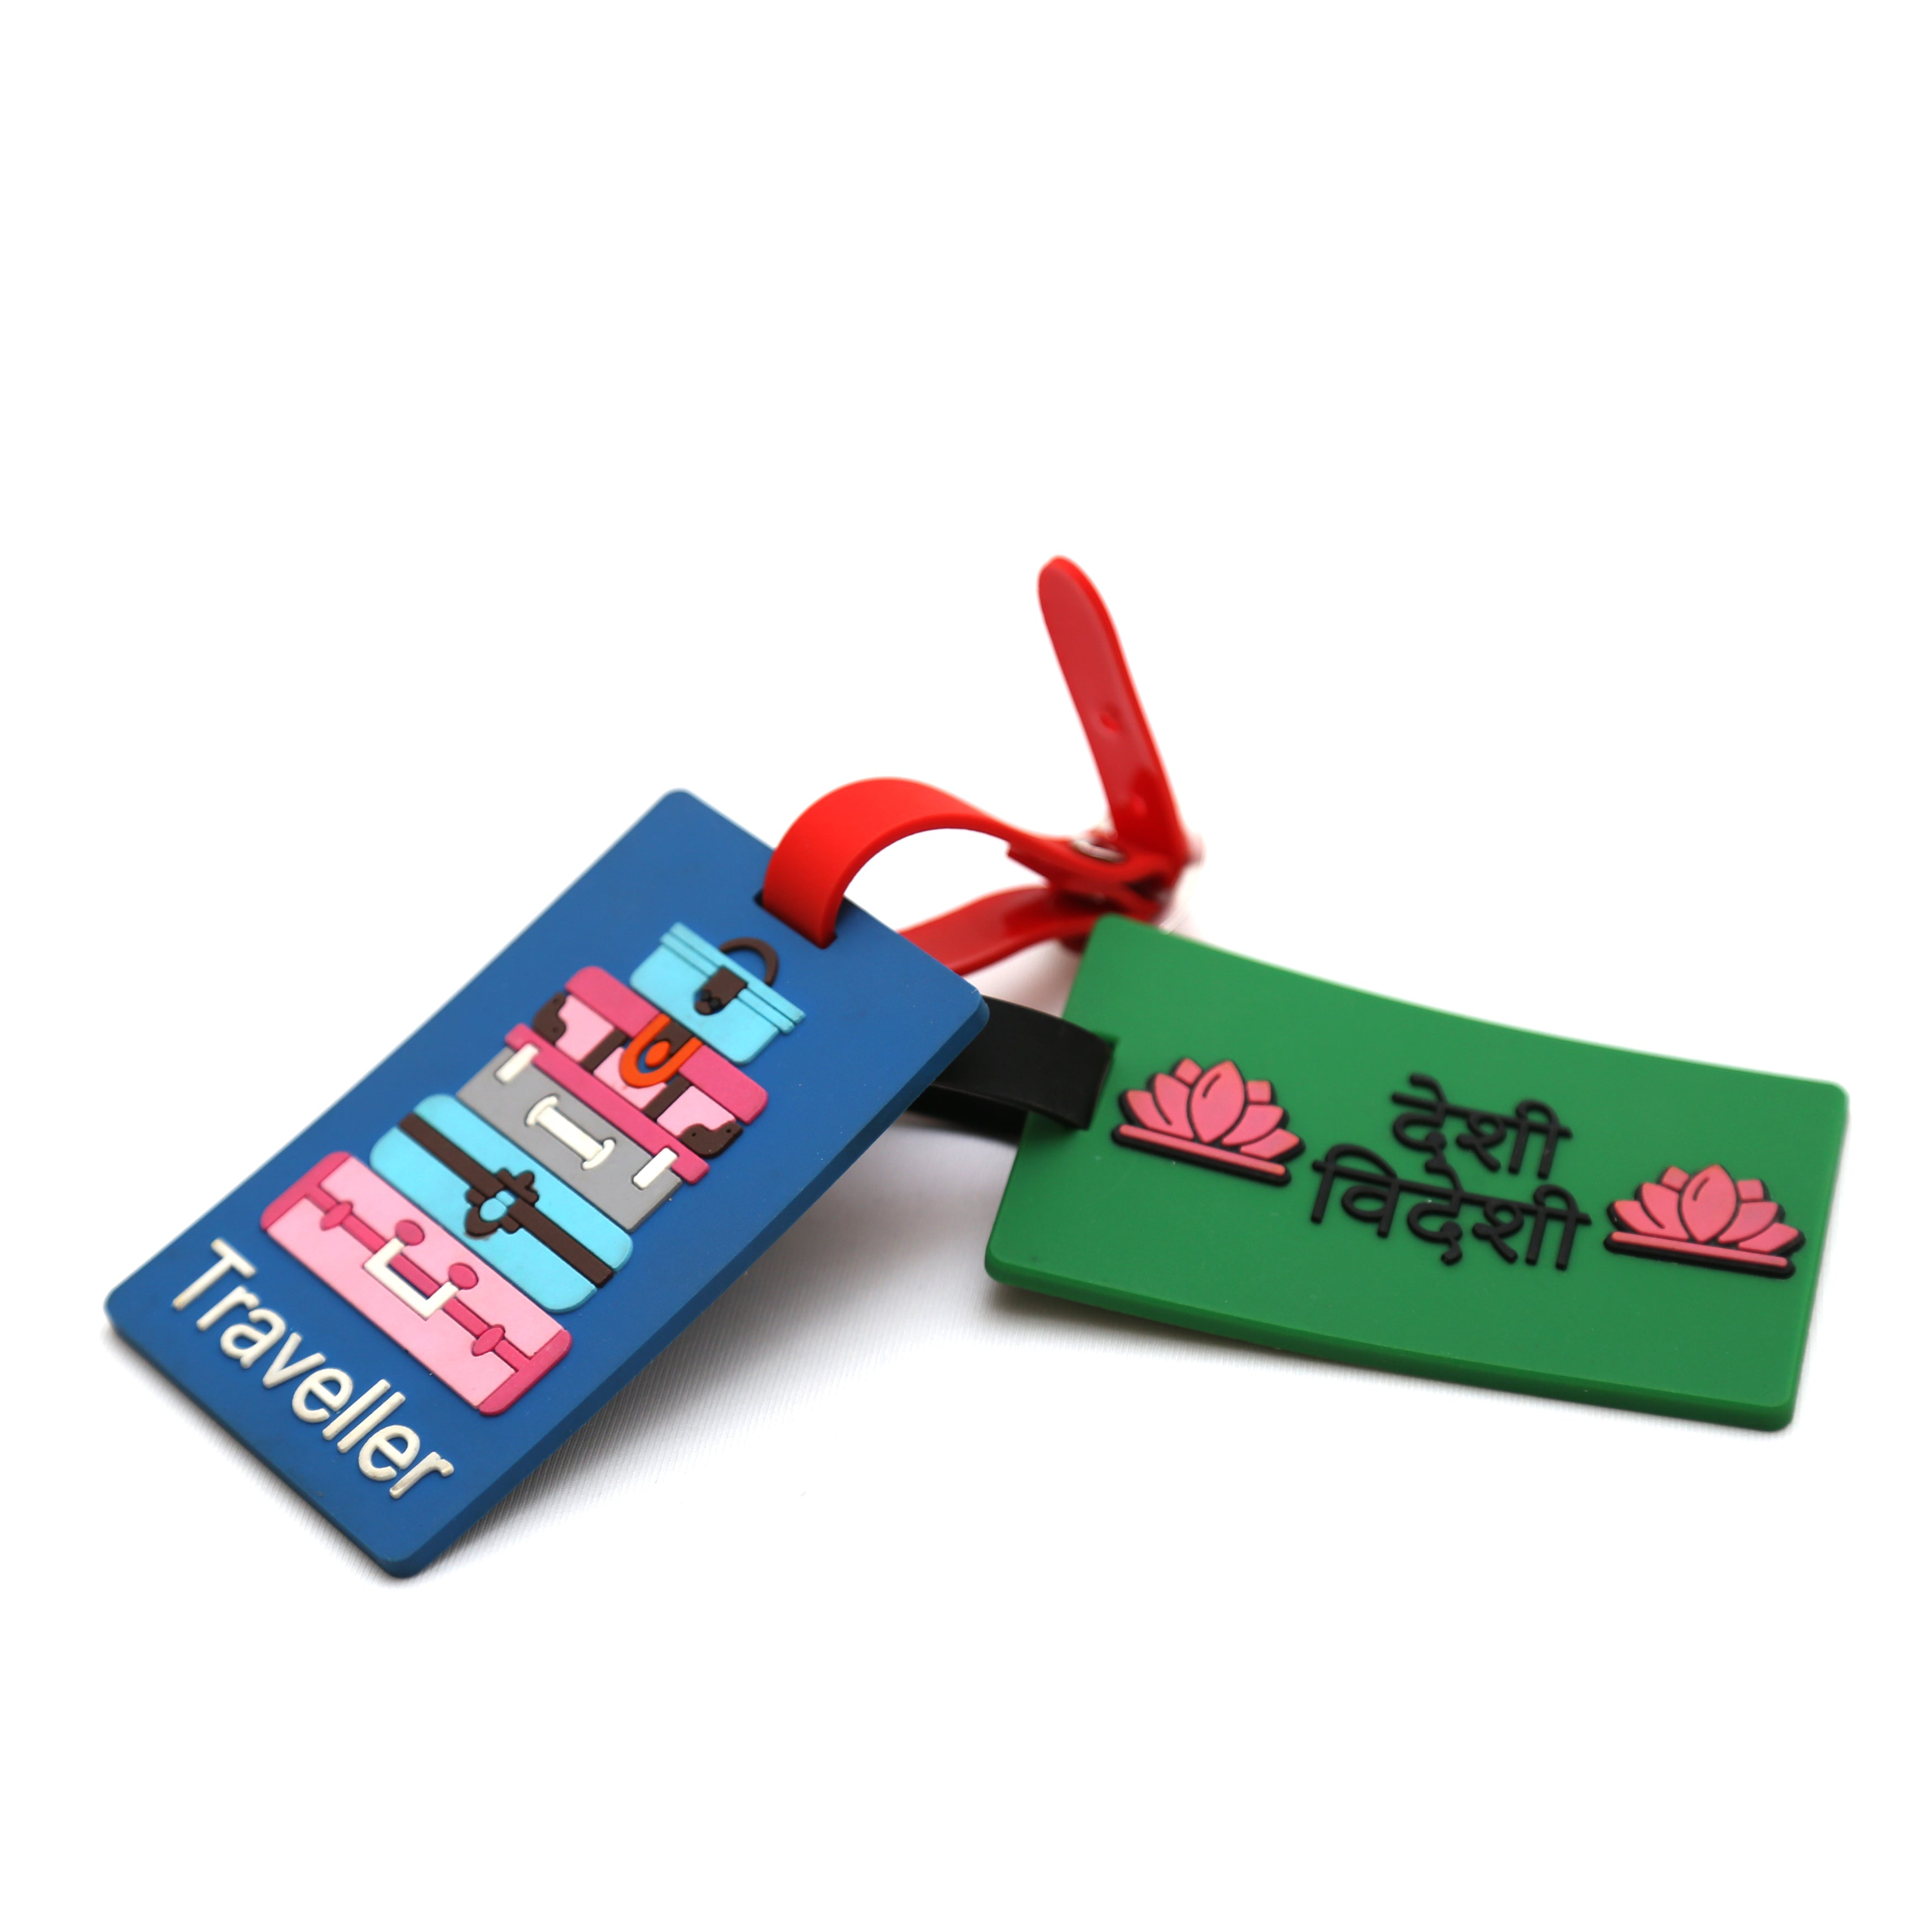 TRAVELLER AND DESI VEDESI LUGGAGE TAG COMBO